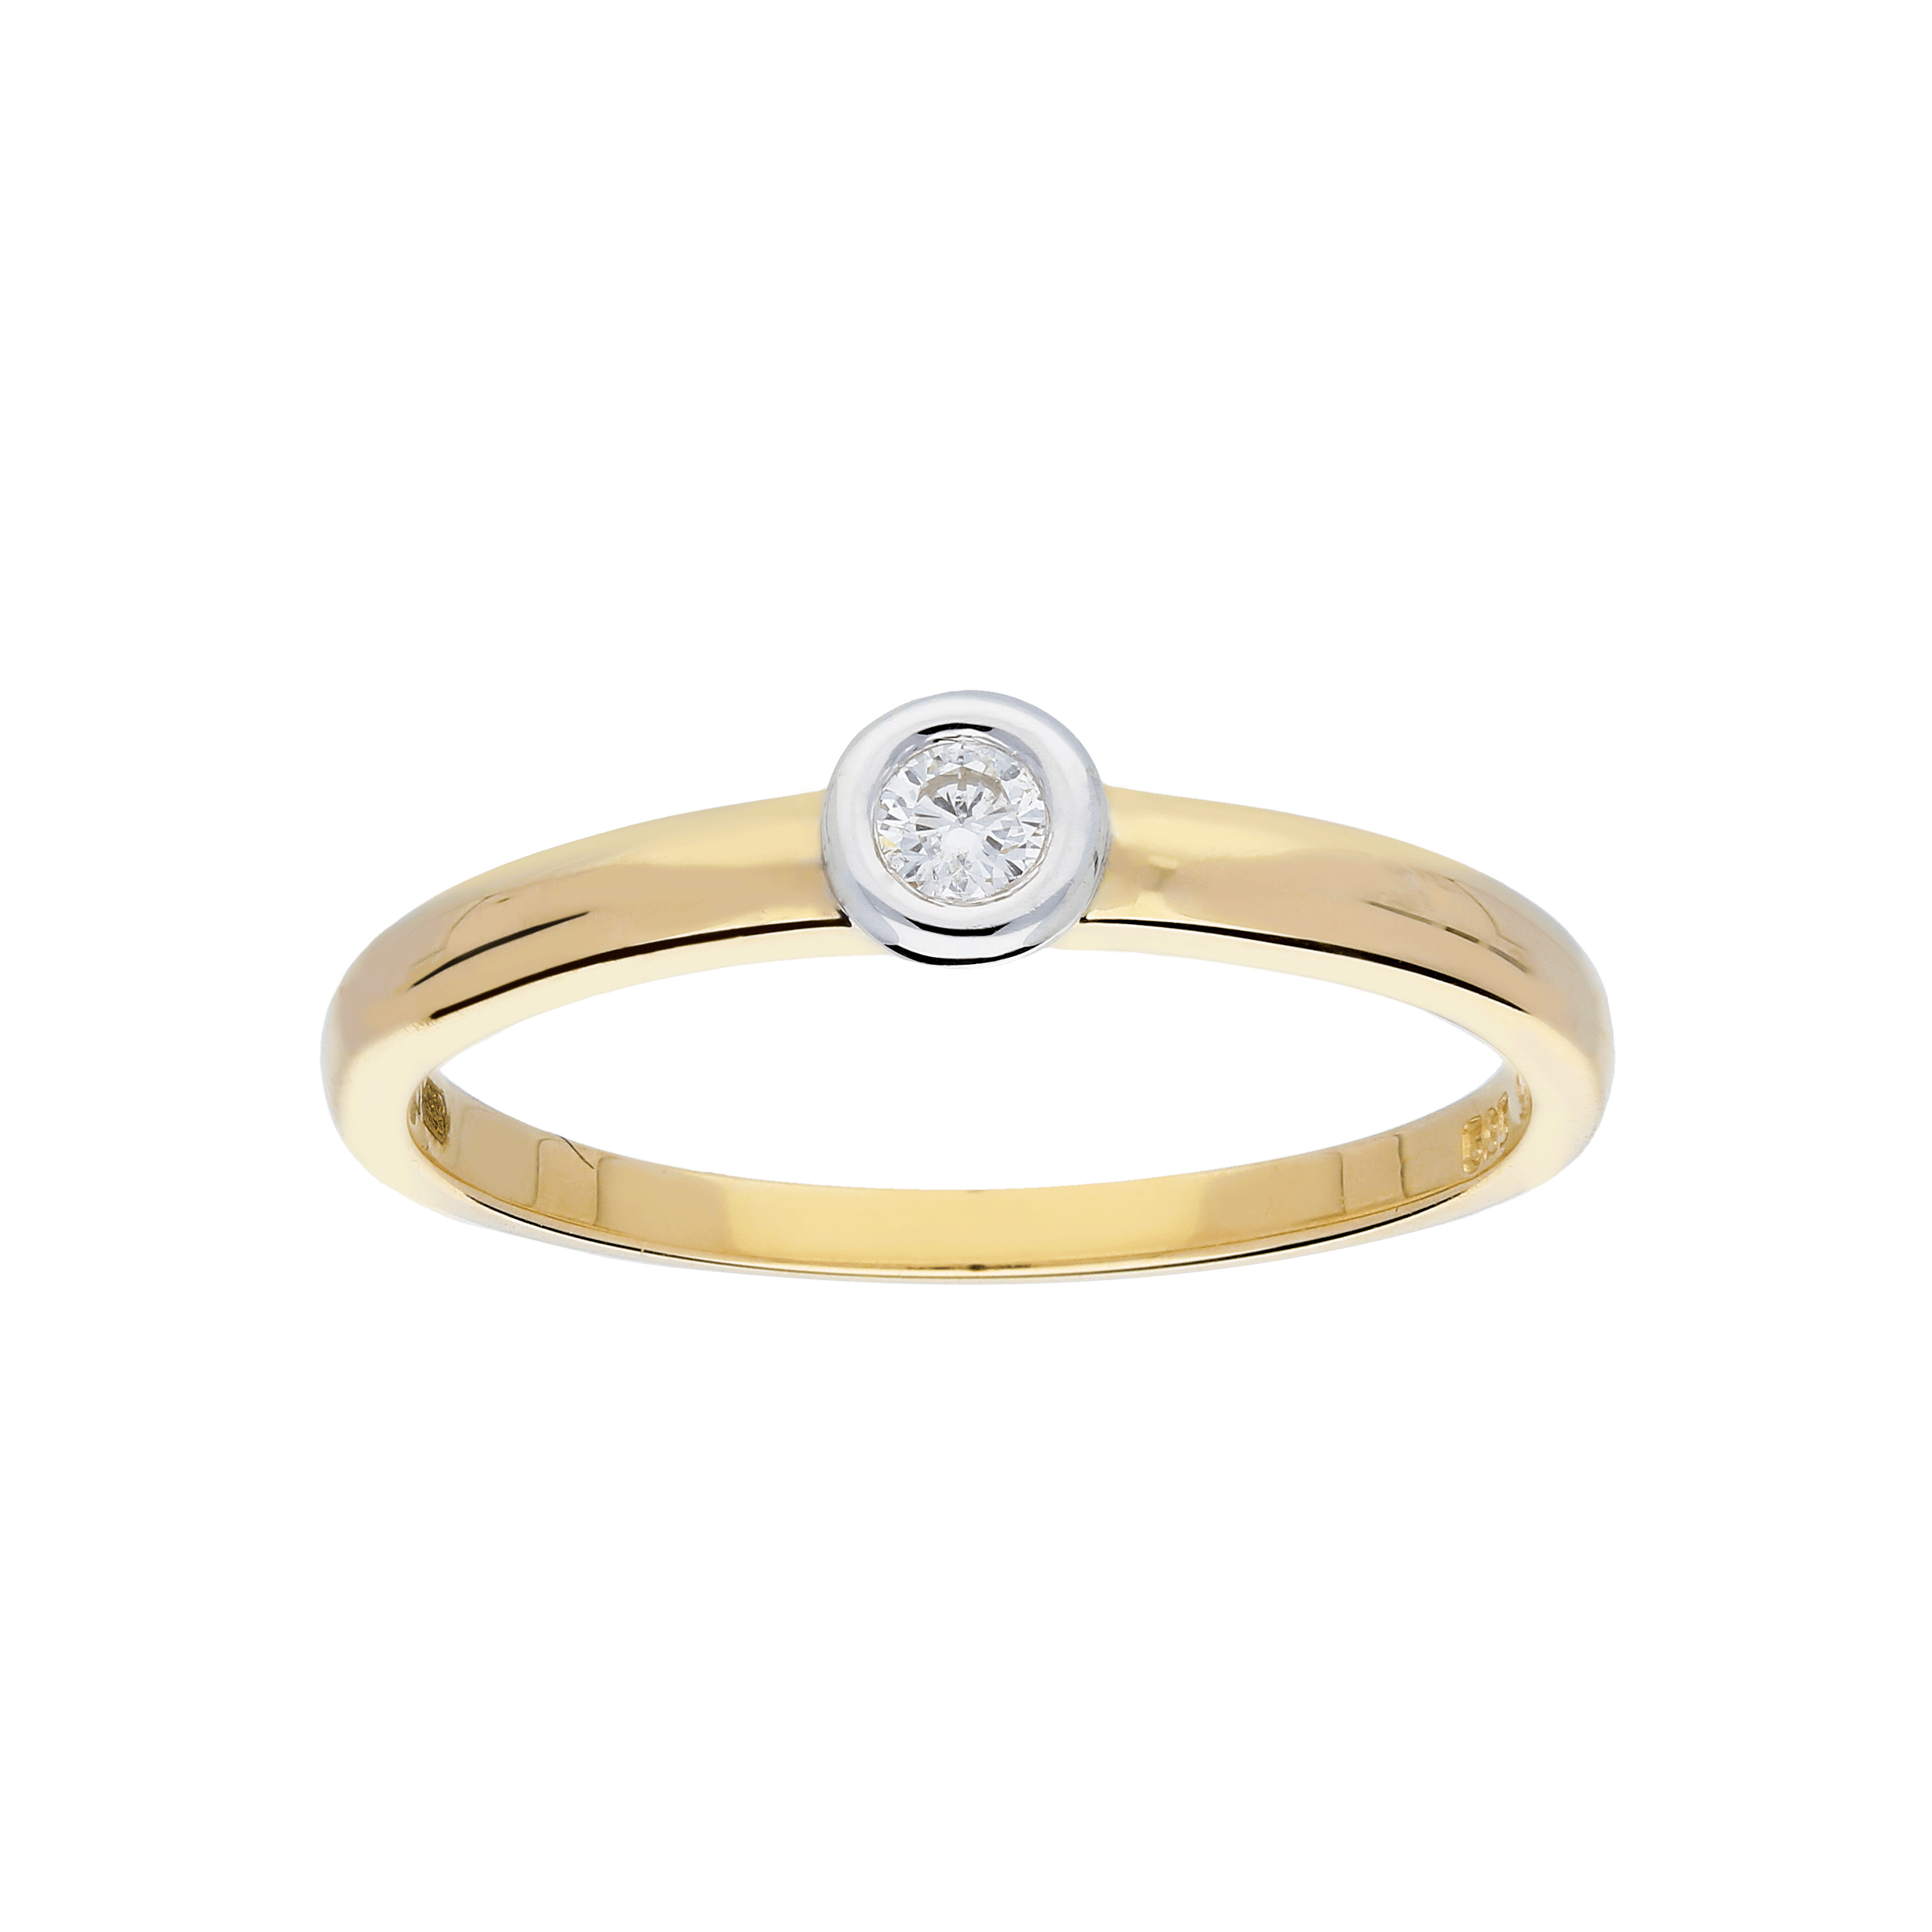 Glow Gouden Ring Bicolor Mat Glanzend Diamant 1 0.05ct G si 214.5308.50